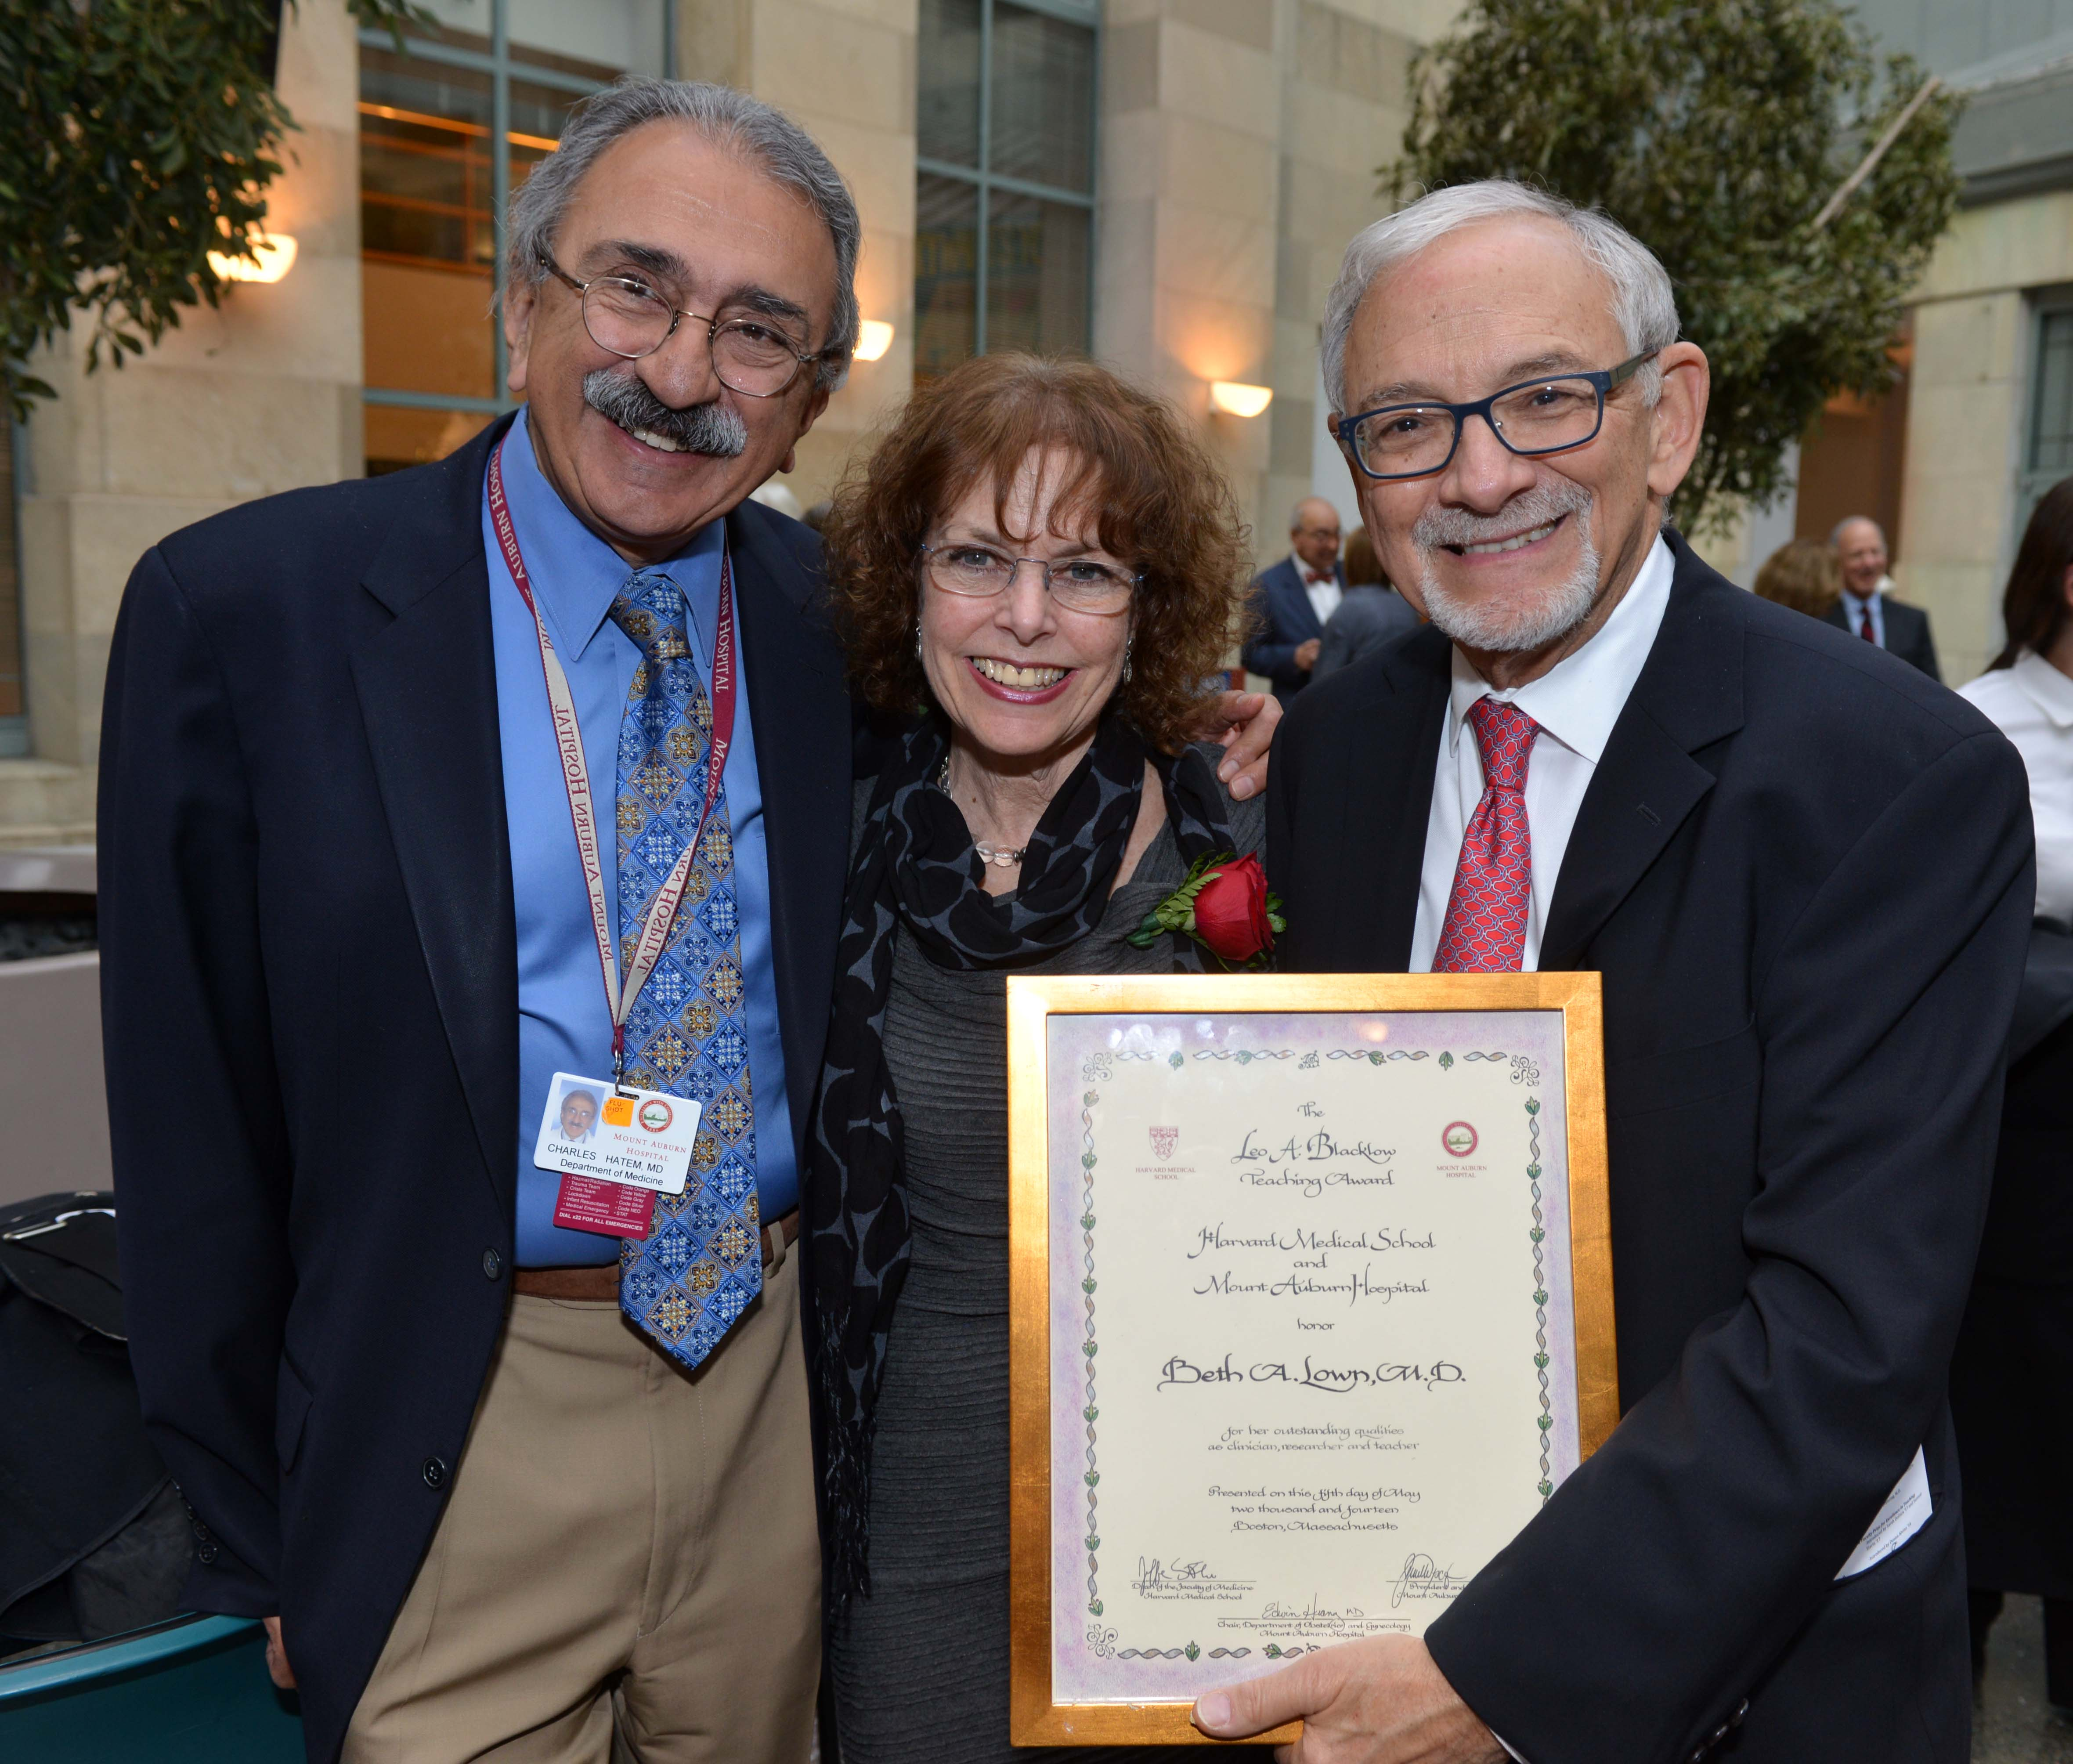 Mount Auburn colleagues Charles Hatem, Beth Lown, and Steve Zinner (left to right).